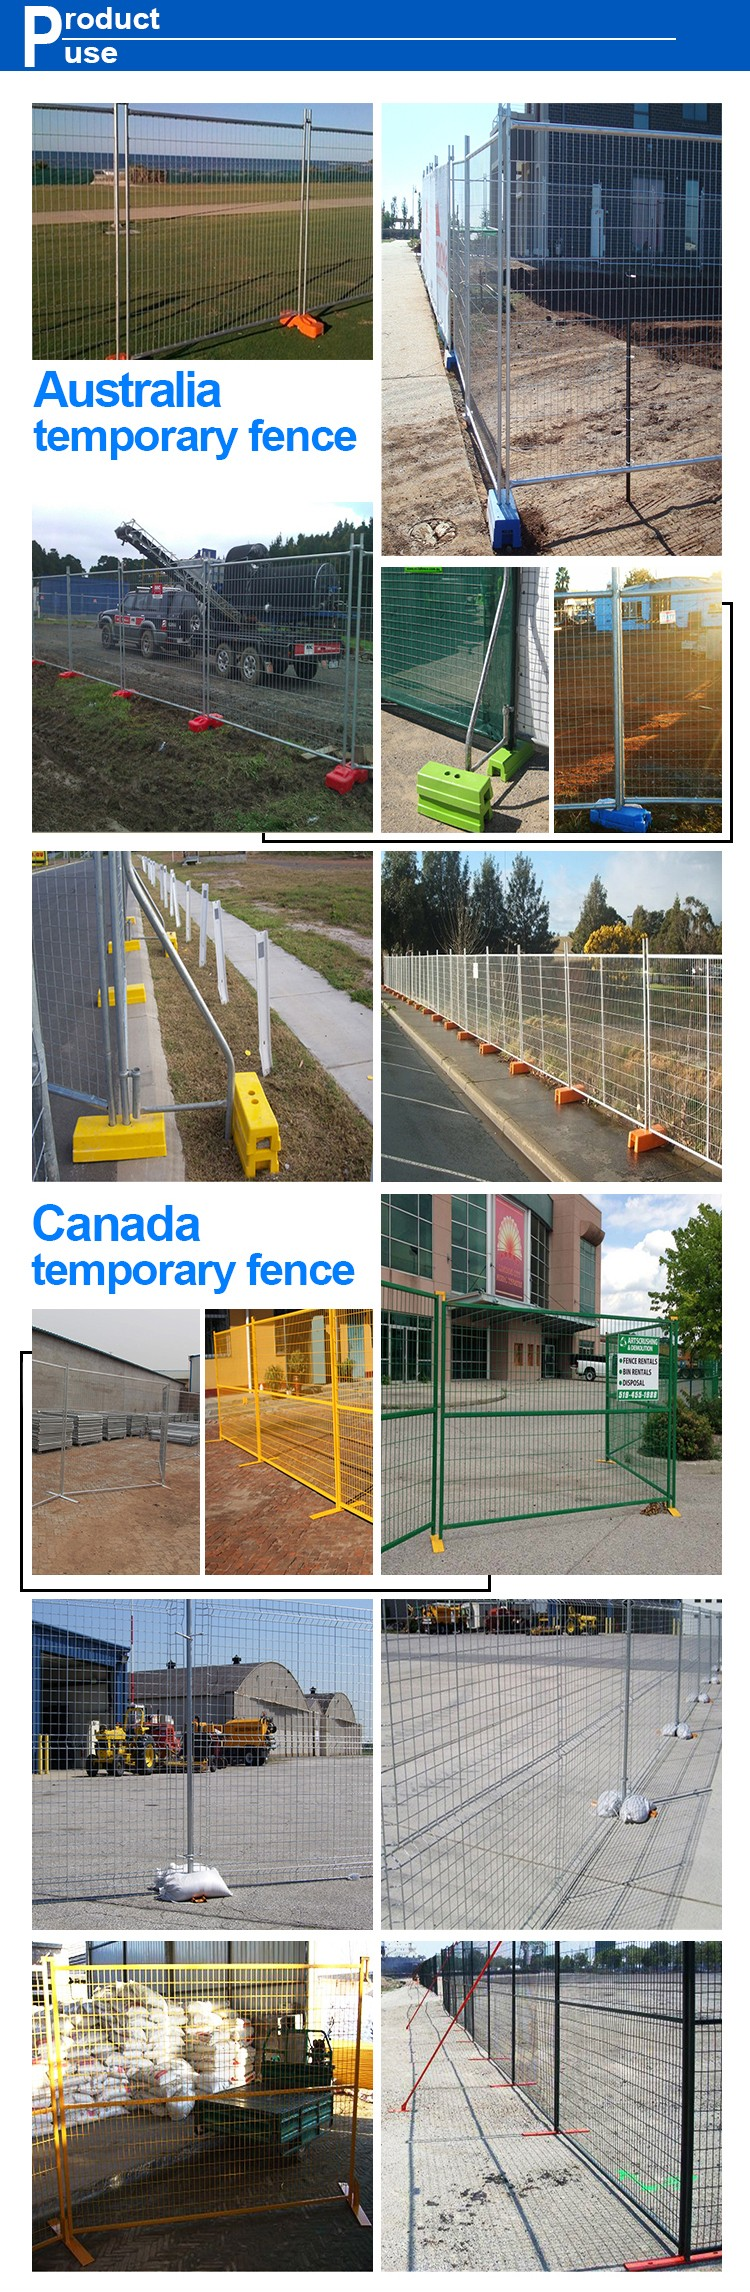 Direct factory supply hot dipped galvanized galvanized welded temporary fence